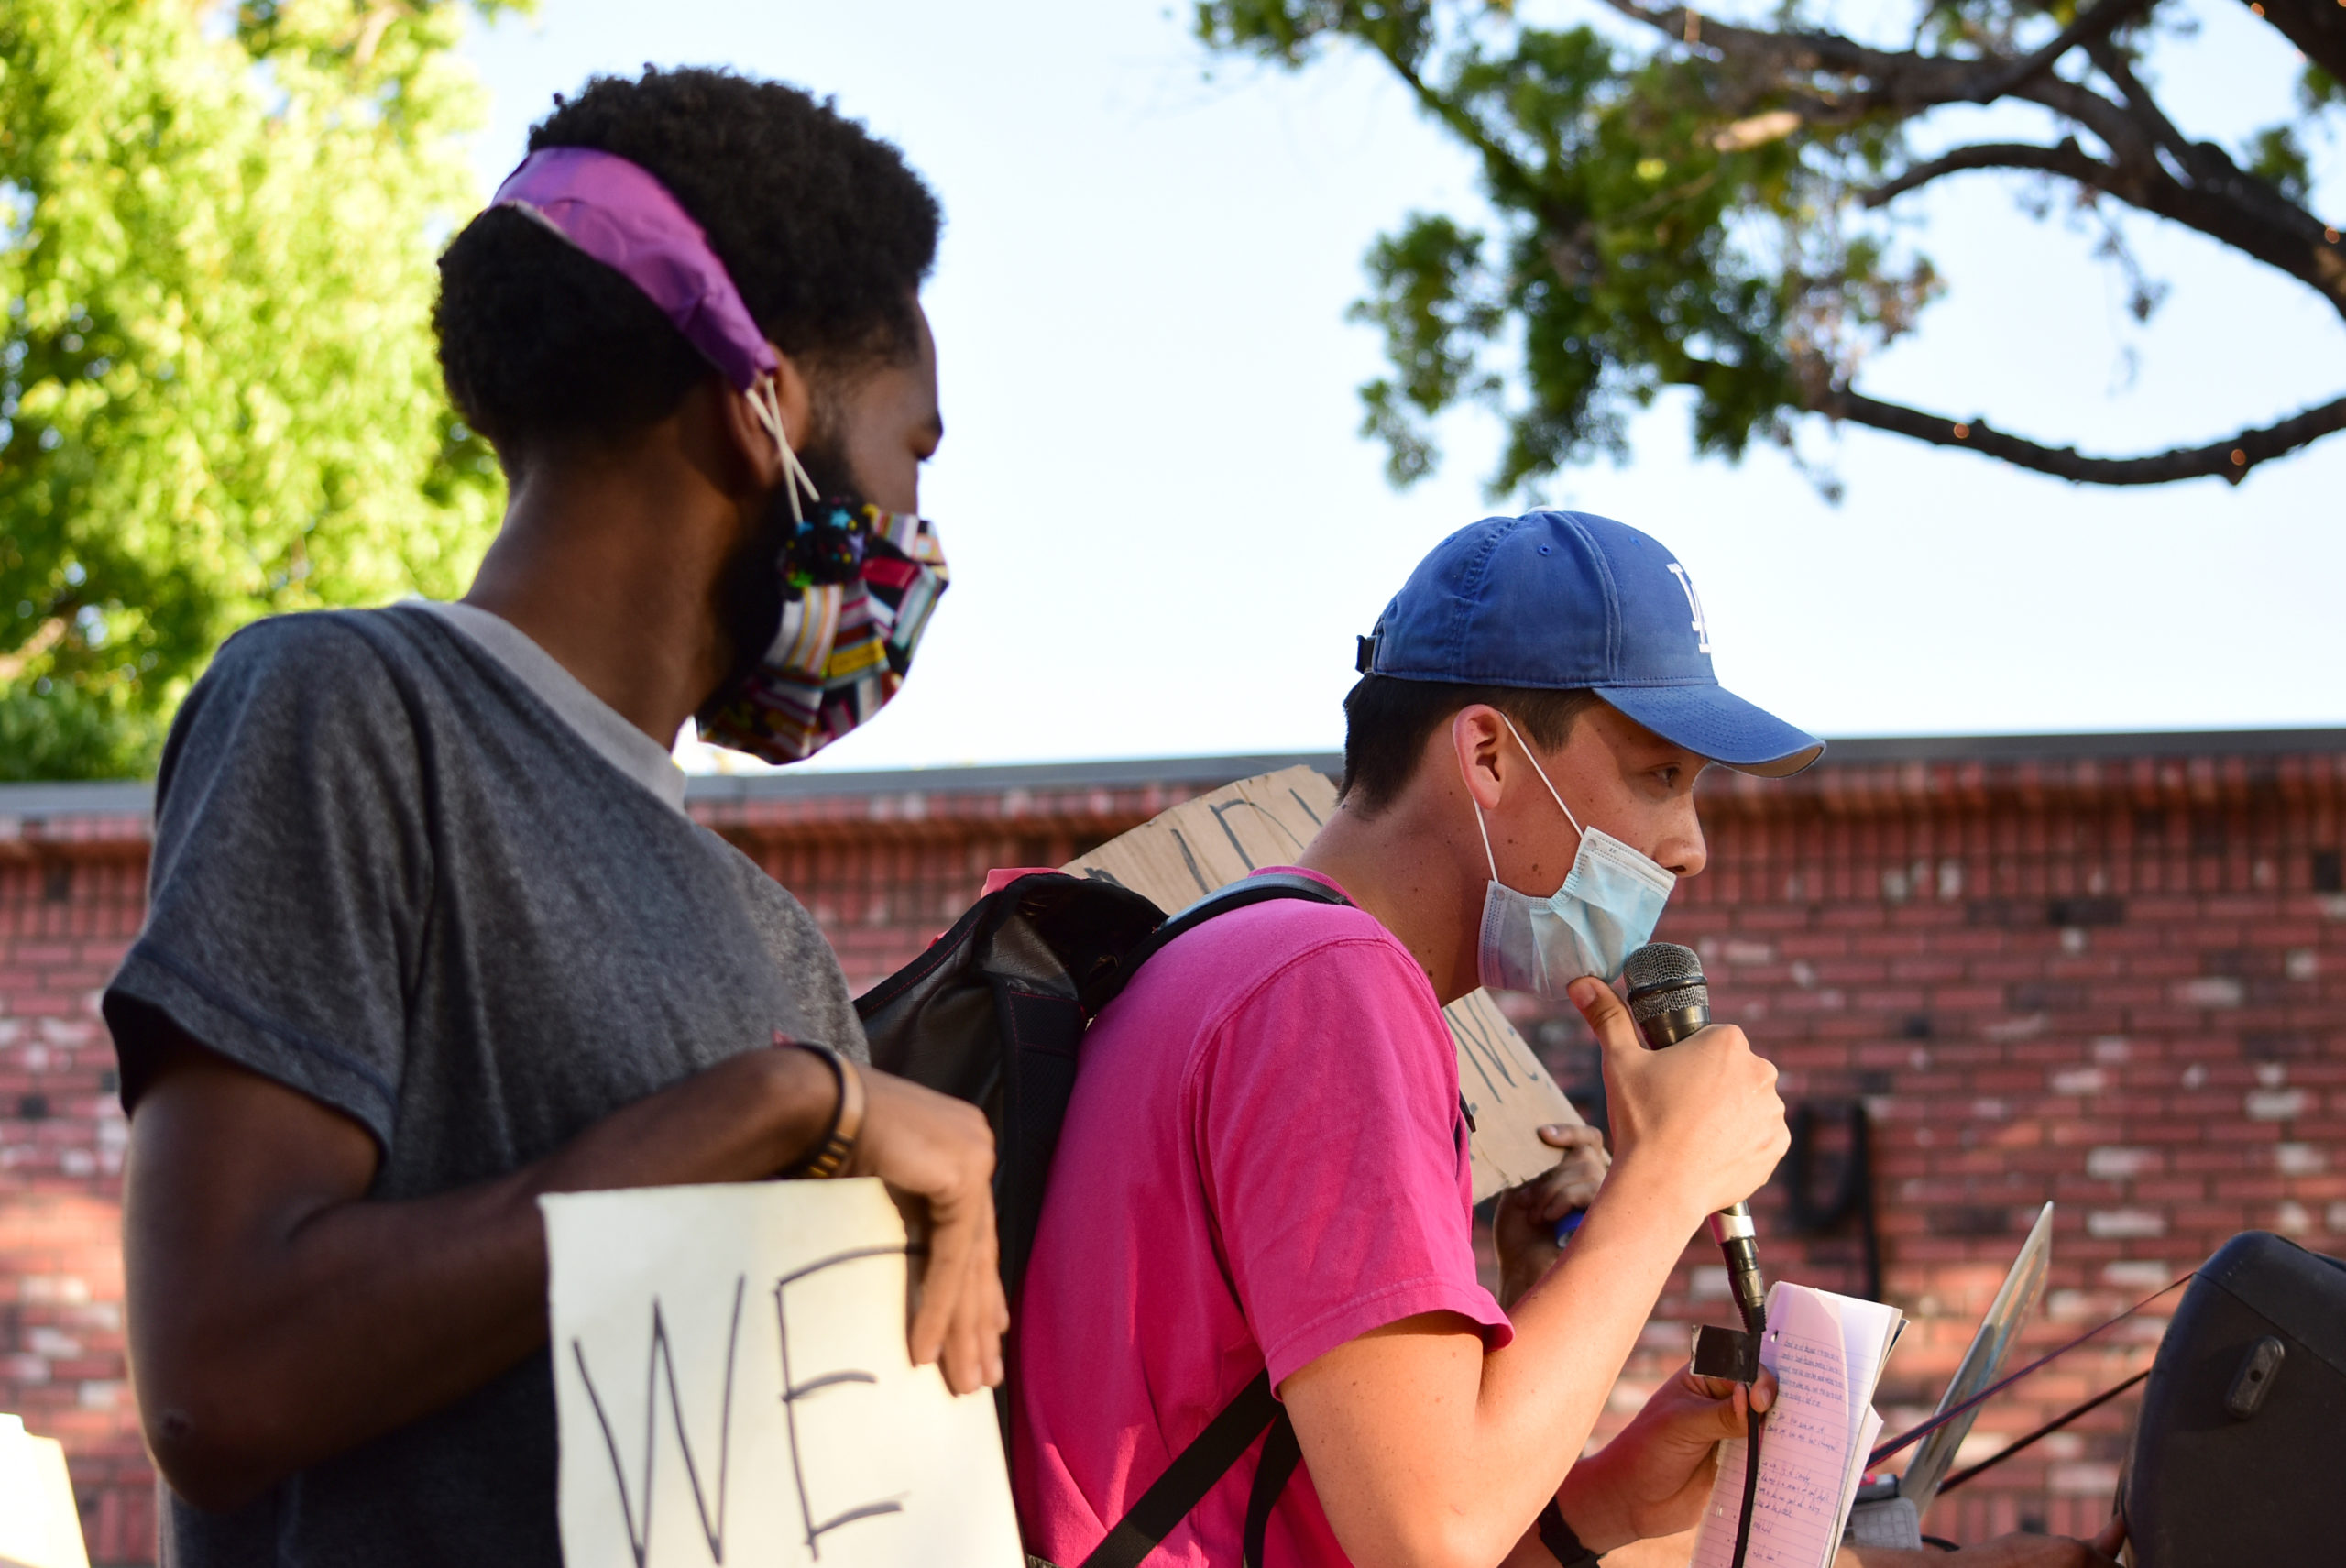 south-pasadena-news-06-12-2020-blm-black-lives-matter-sp-youth-for-police-reform-protest-city-hall-mission-st-09